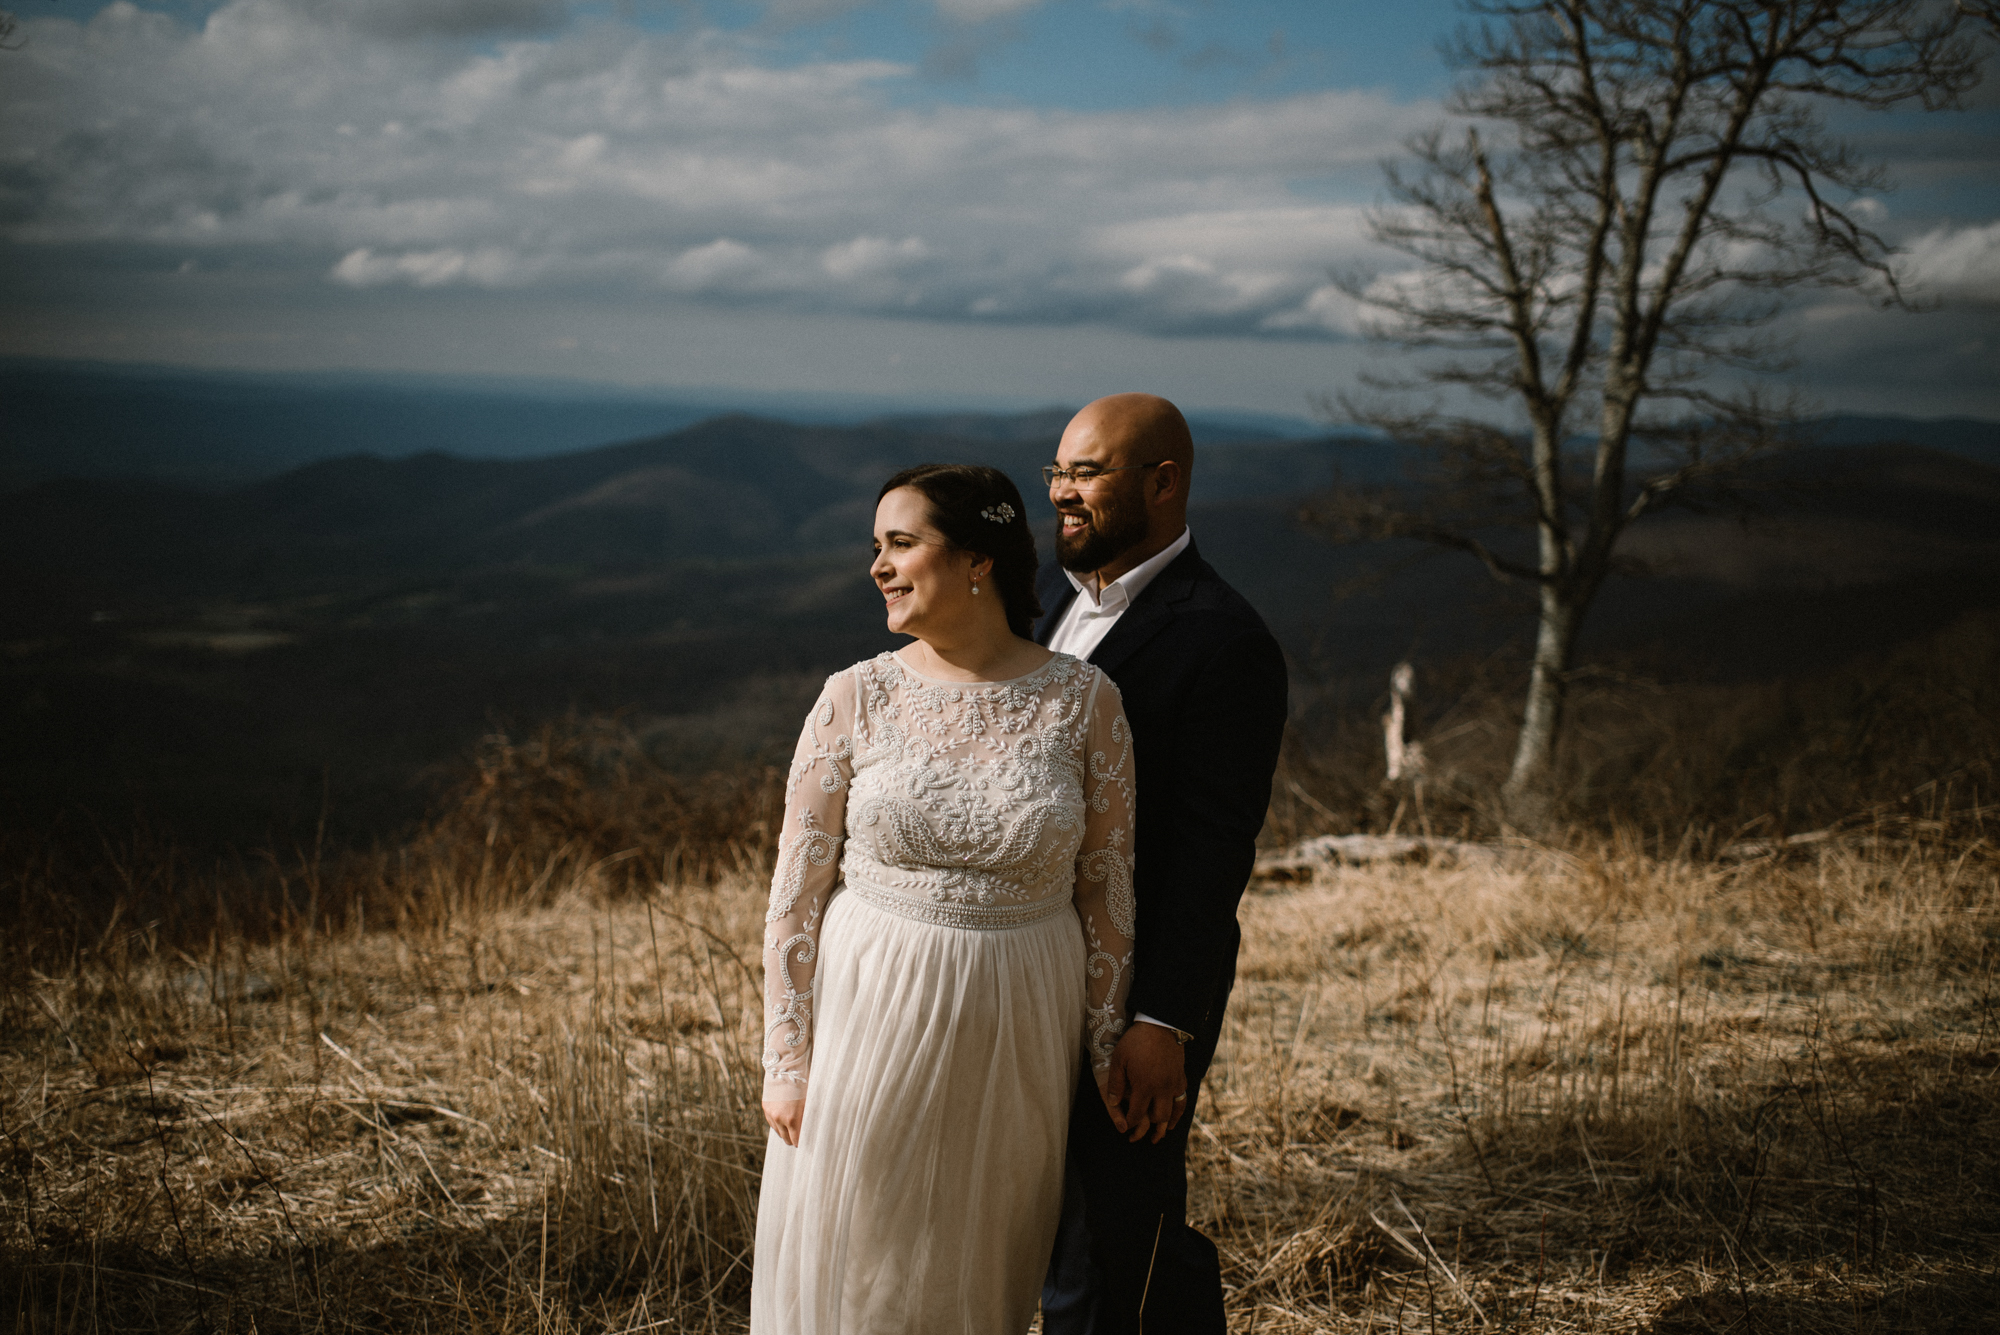 Emma and Jeddah - Intimate Luray Wedding - Shenandoah National Park Wedding - Adventure Elopement in Virginia - Shenandoah National Park Elopement_47.jpg